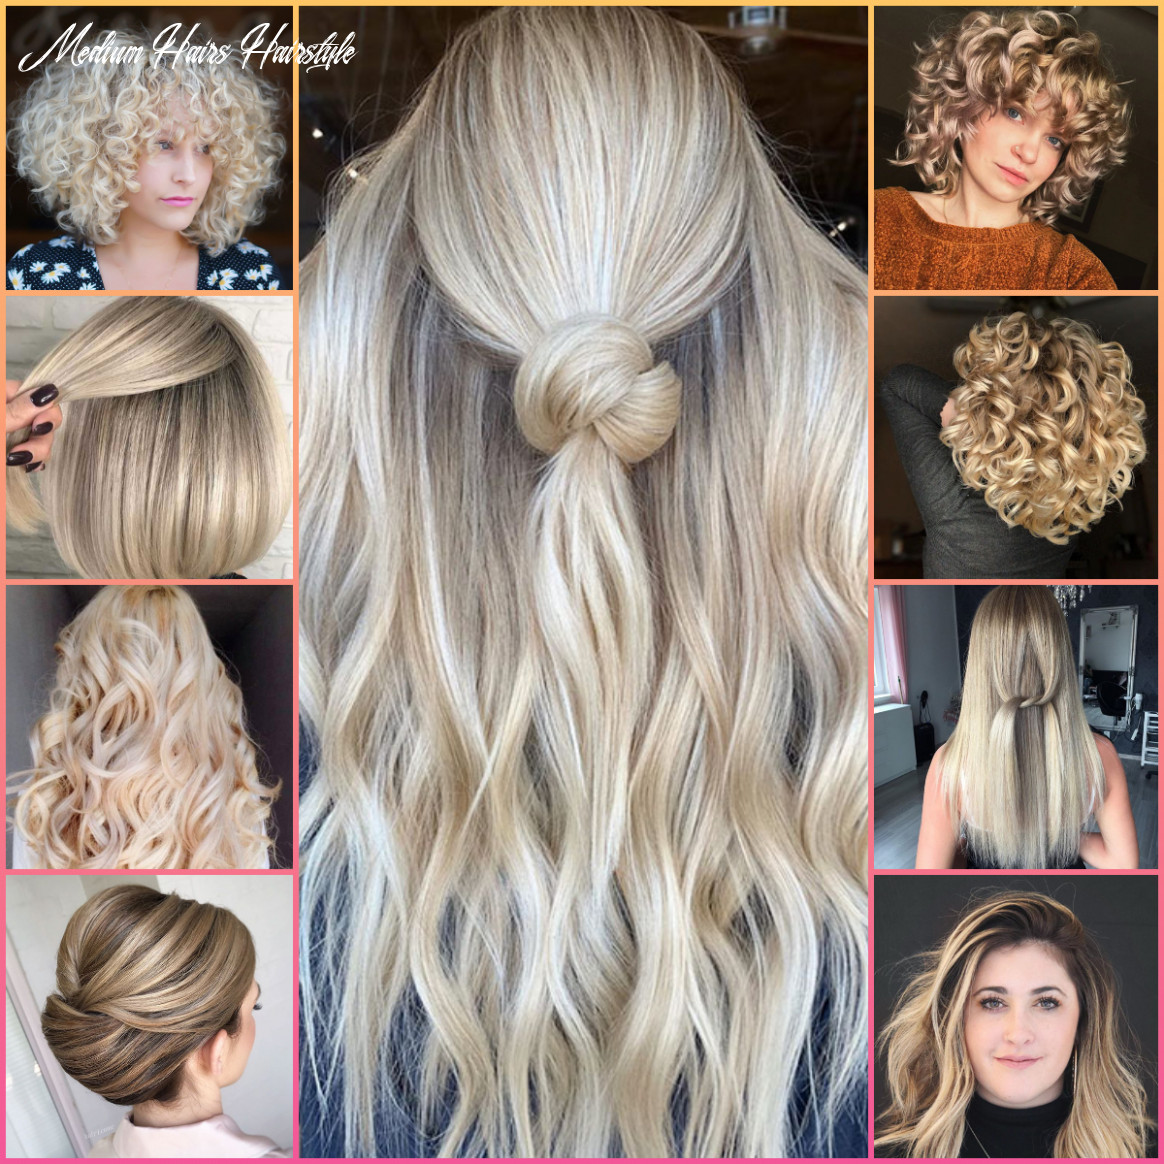 Top 9+ Stylish Blonde Hairstyles Shades 9 Images For Short ...